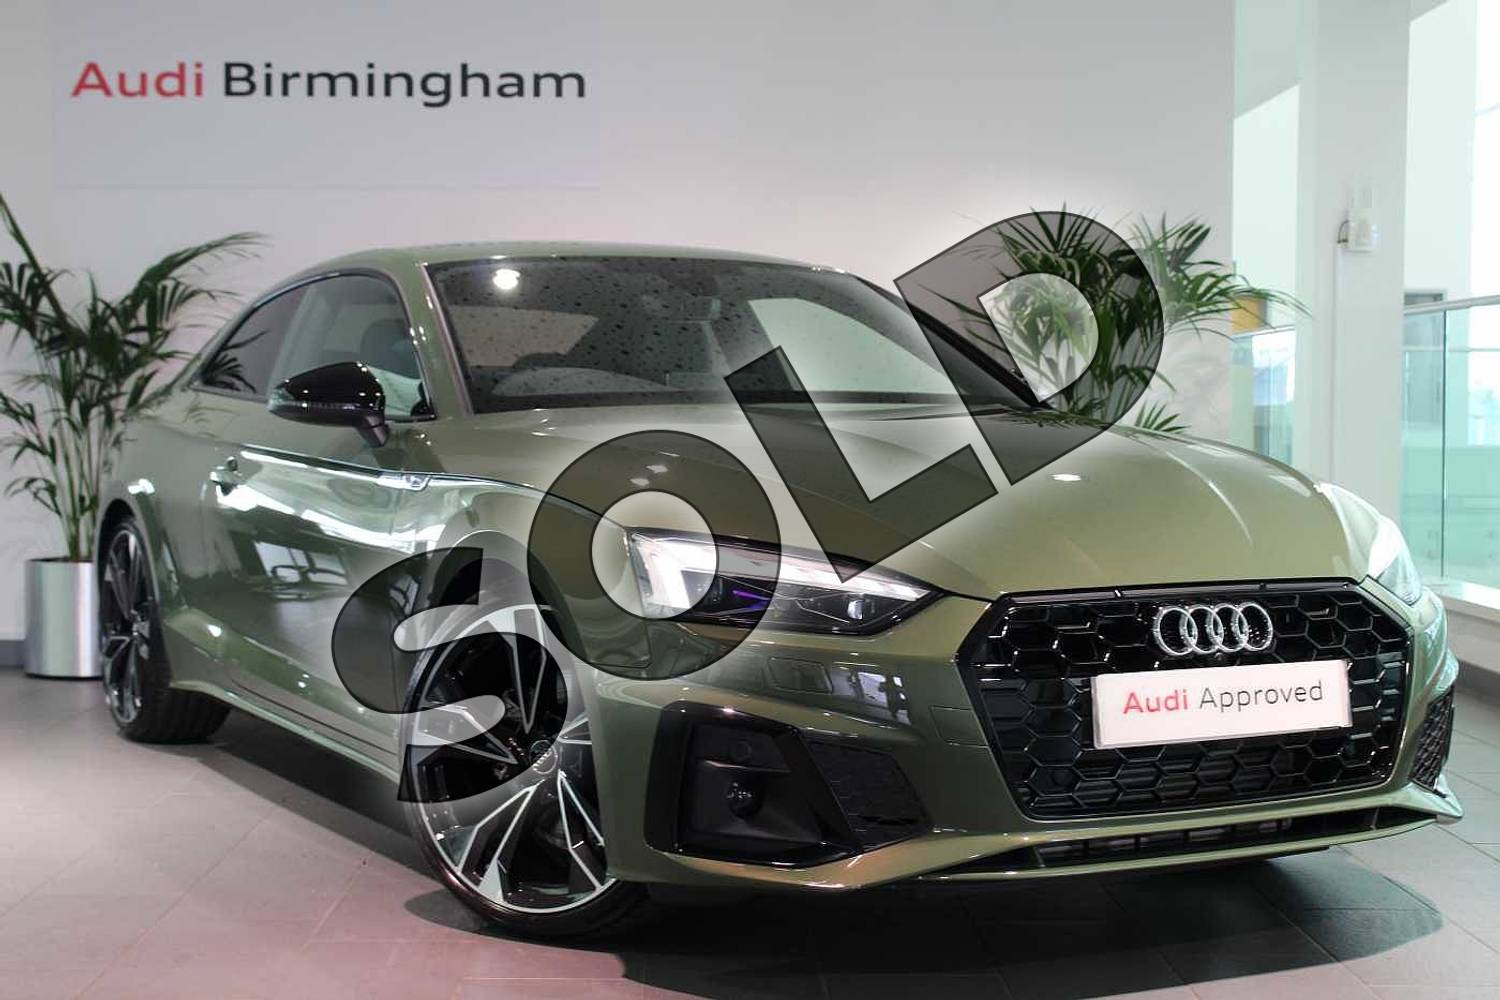 2020 Audi A5 Coupe Special Editions 40 TFSI Edition 1 2dr S Tronic in District Green Metallic at Birmingham Audi